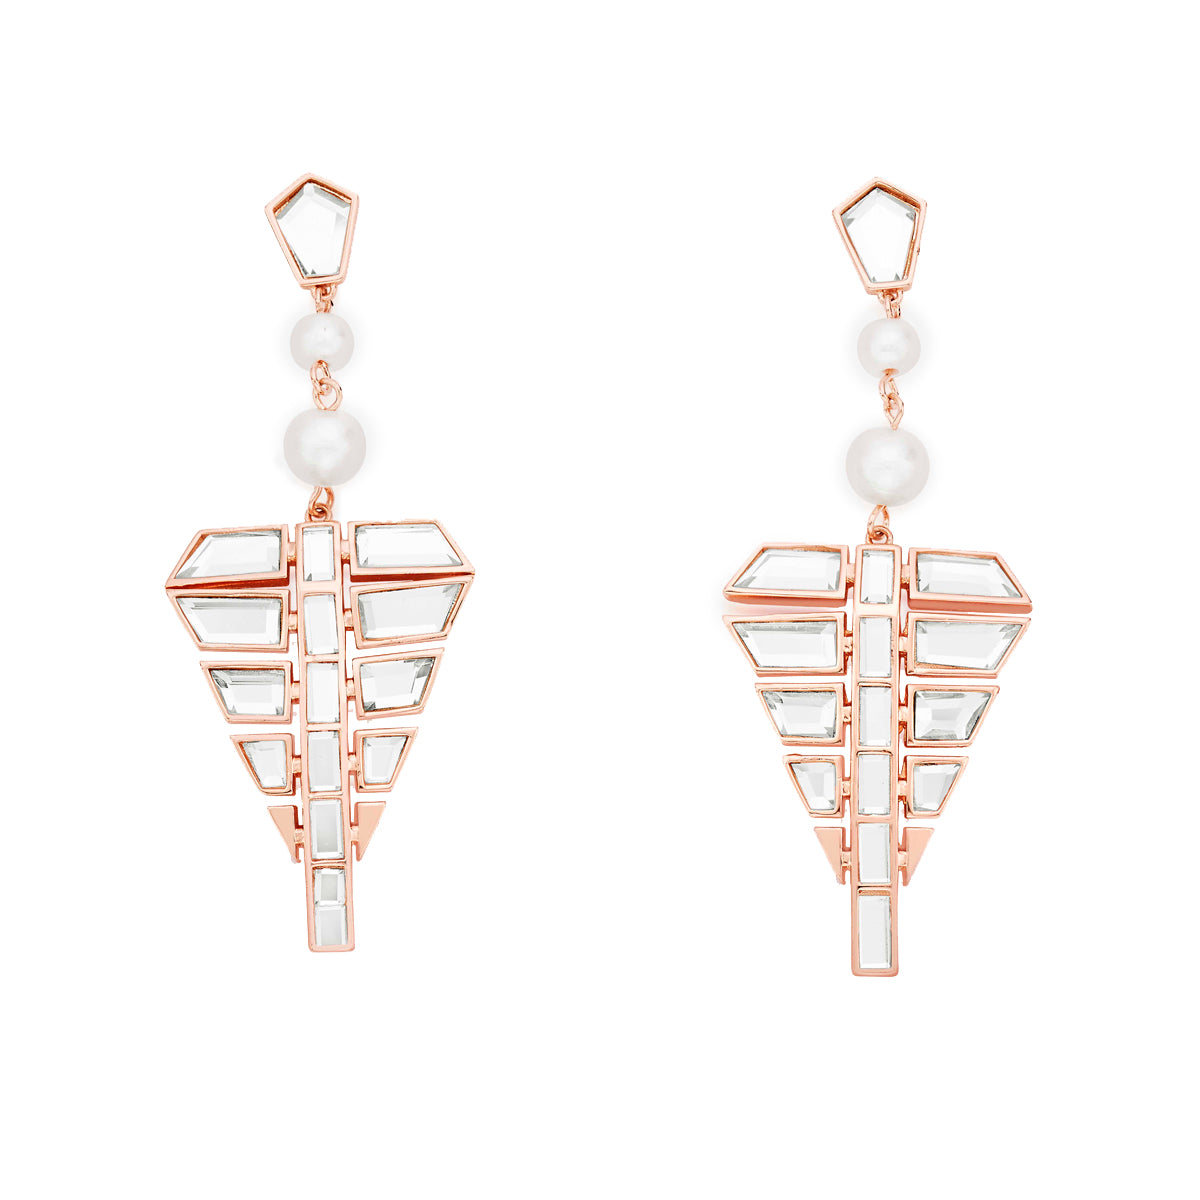 These earrings are handcrafted with mirror, pearl and rose gold plated brass.These come with a whole lot of edge but they need a sprinkling of attitude from you to match.